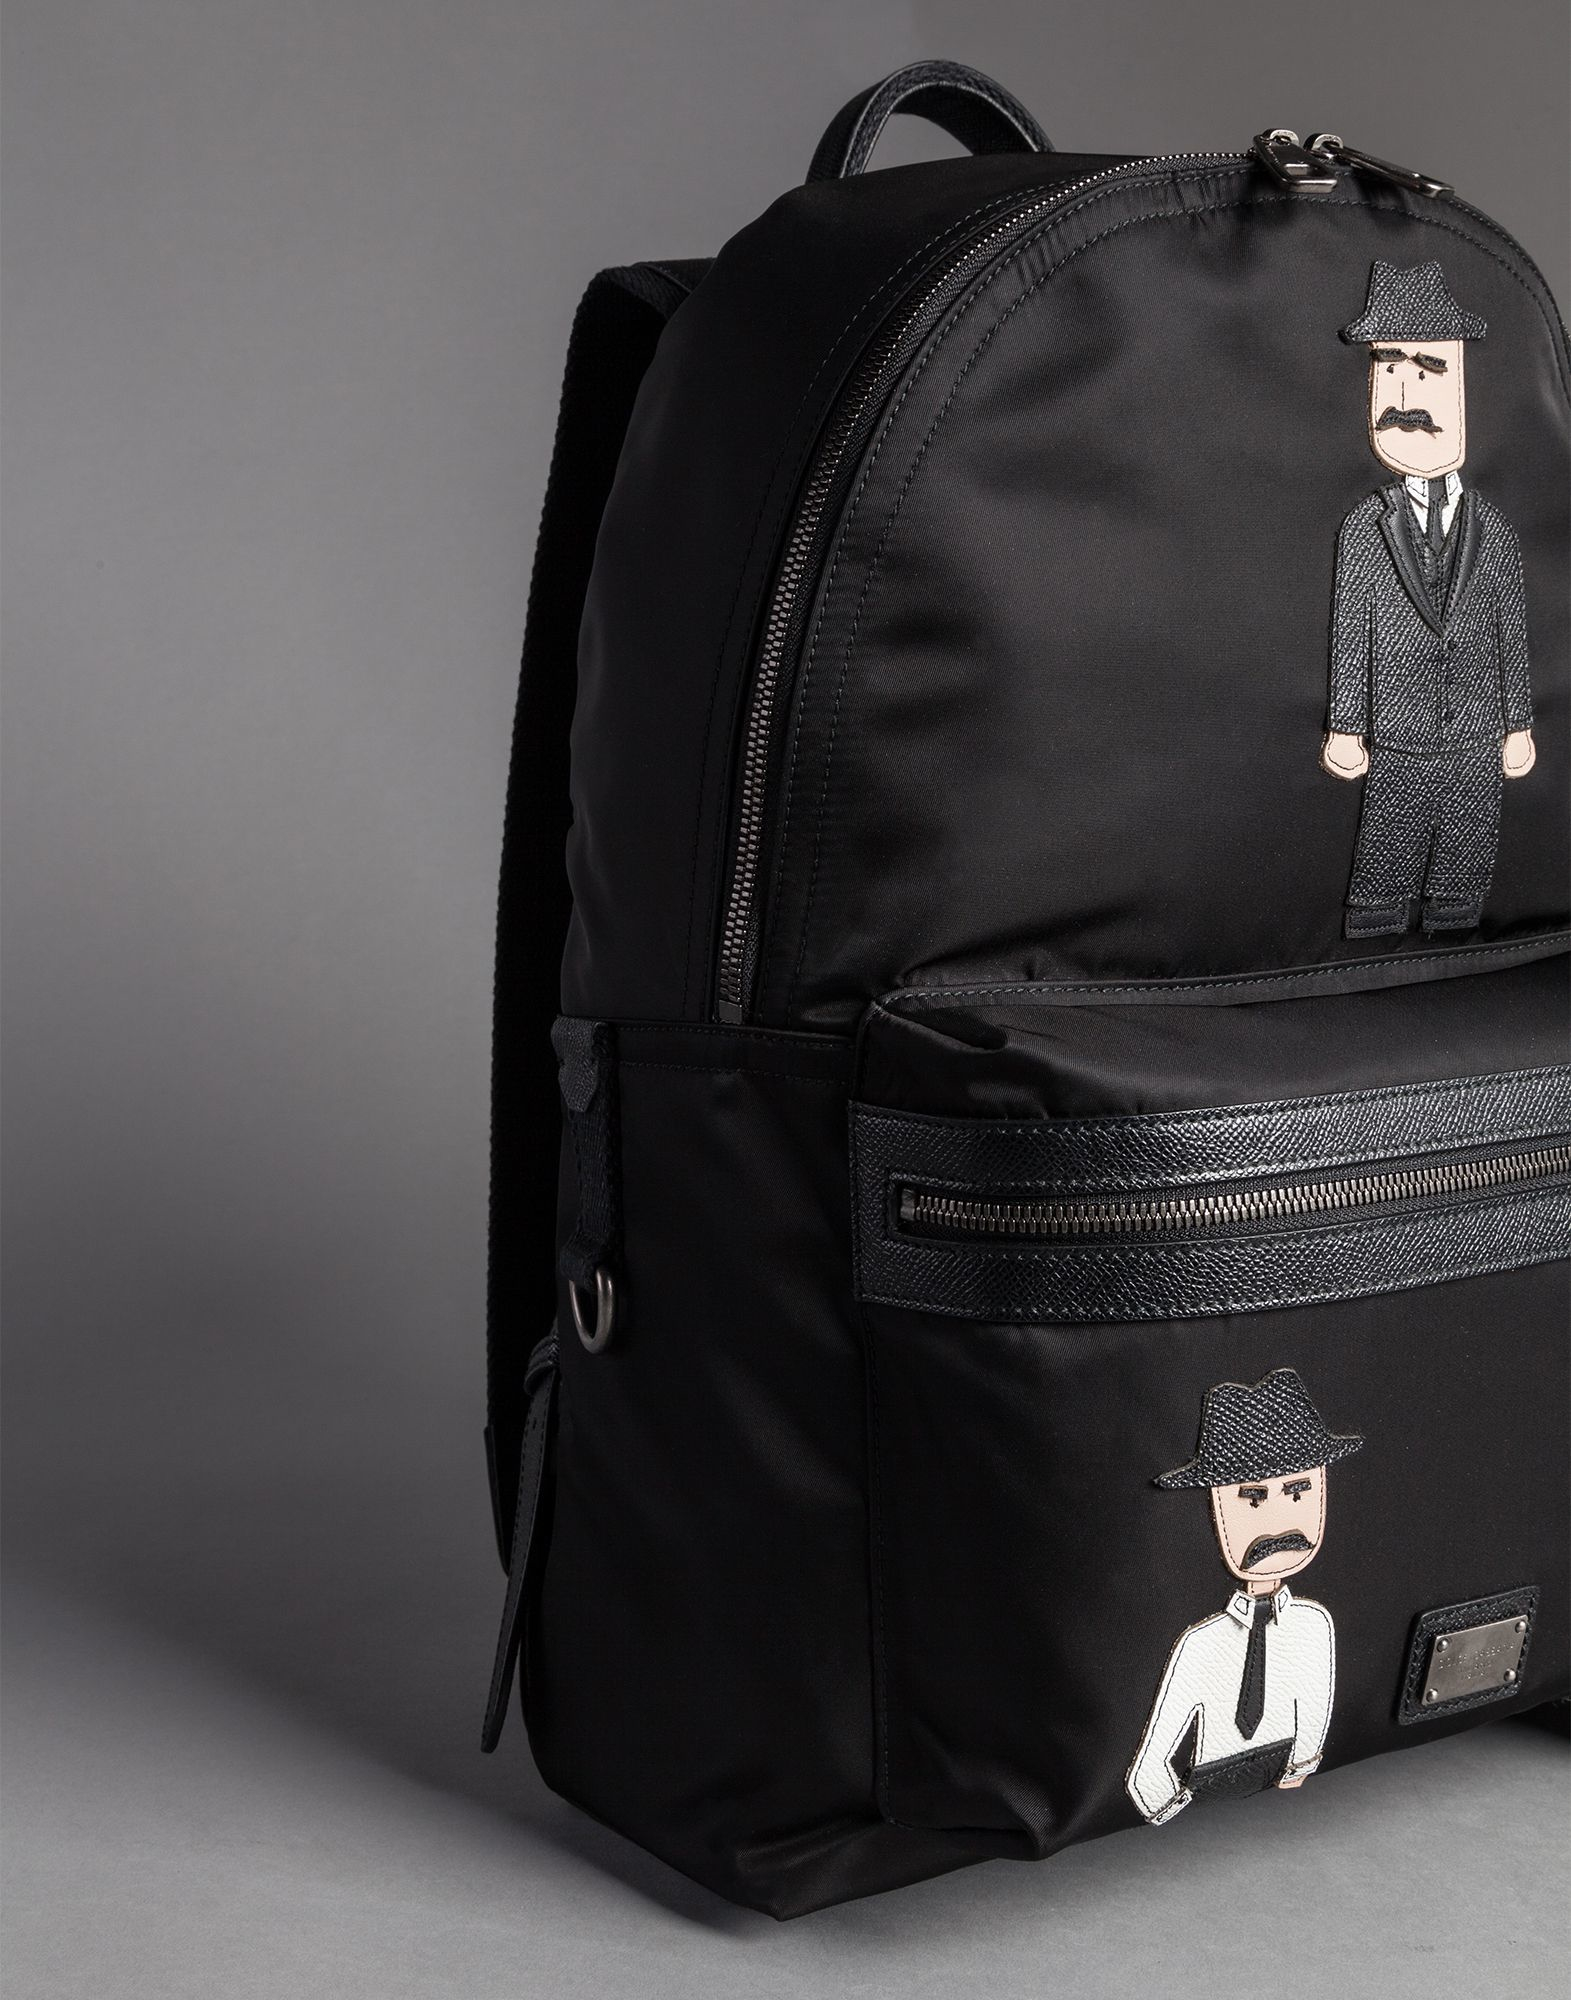 4d78d4d9f71 Dolce & Gabbana Vulcano Nylon Backpack With Sicilian Men Patches in ...